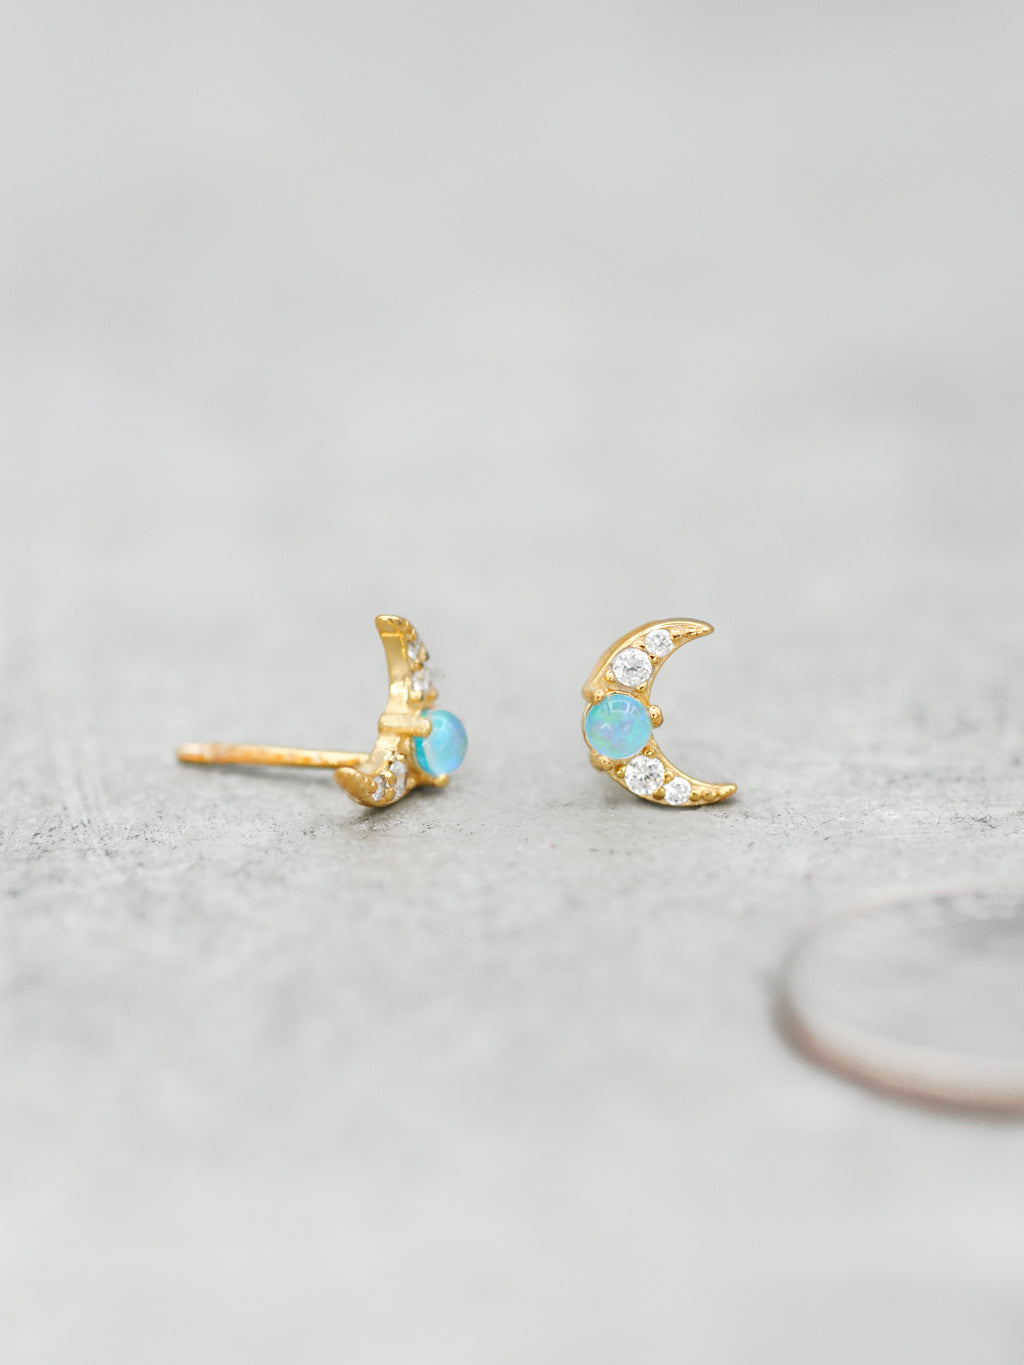 Opal & Cubic Zirconia Crescent Moon Post Earrings